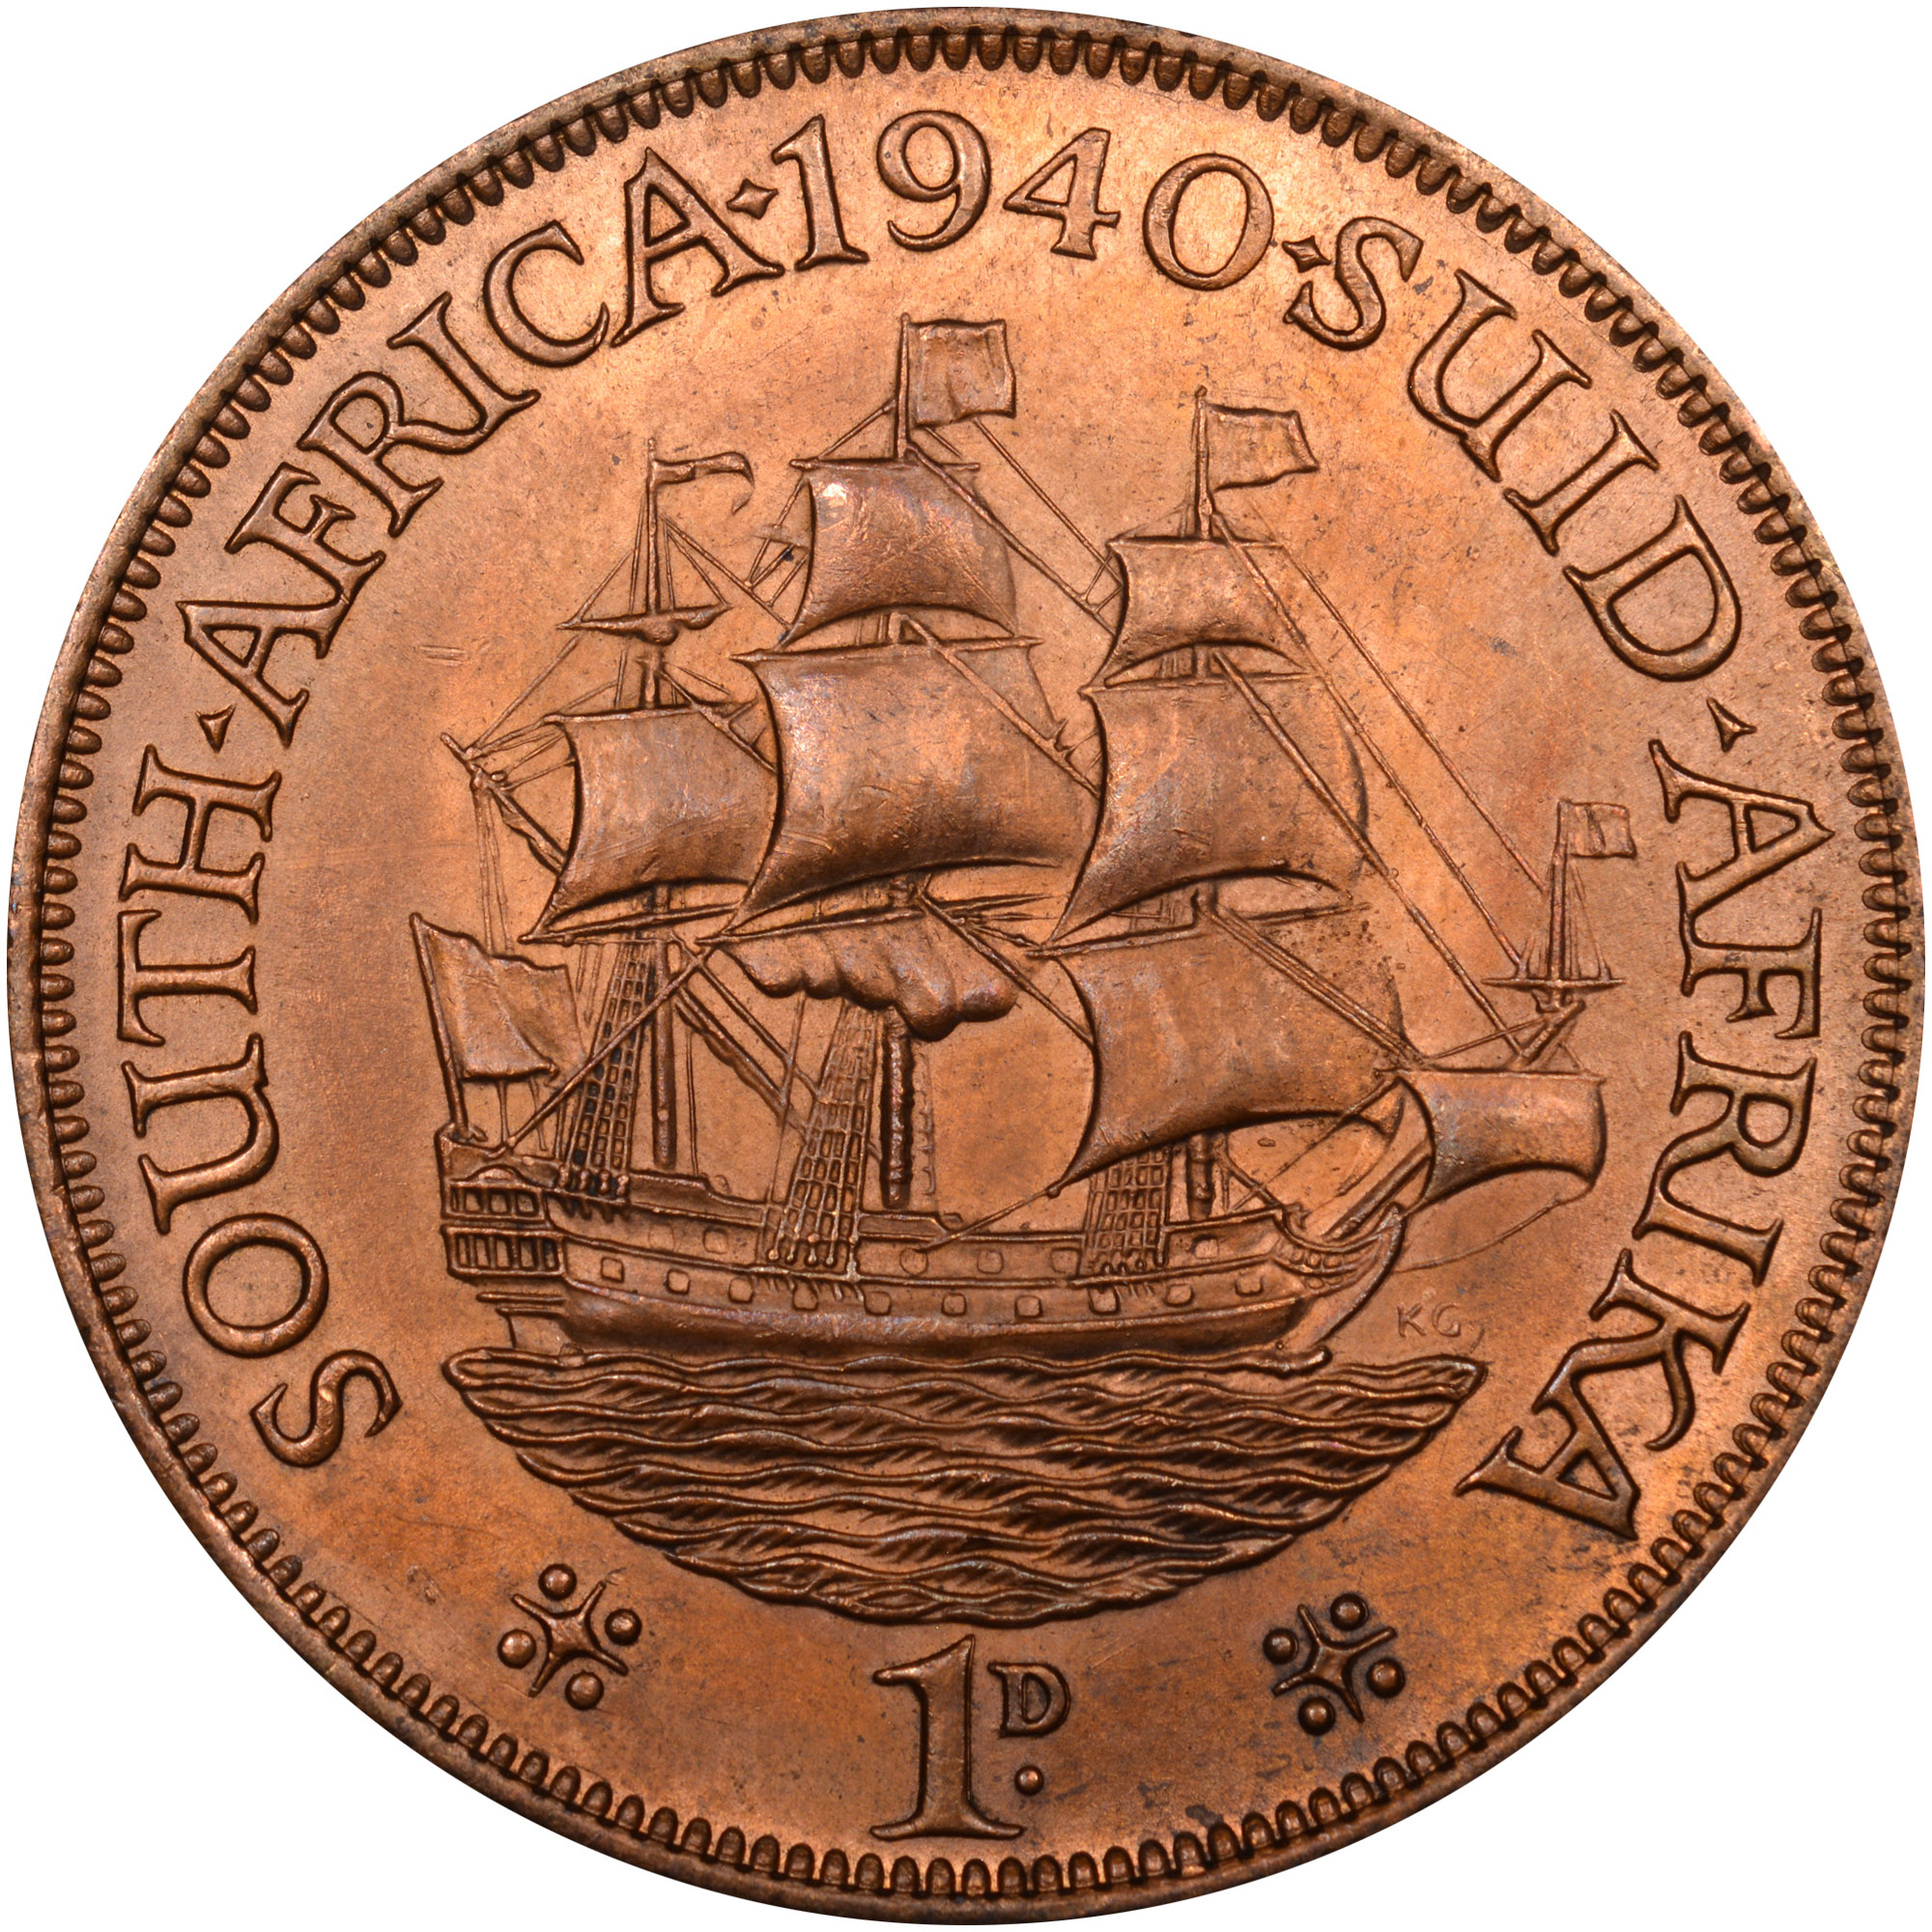 South African Coins Value How To Make Money From